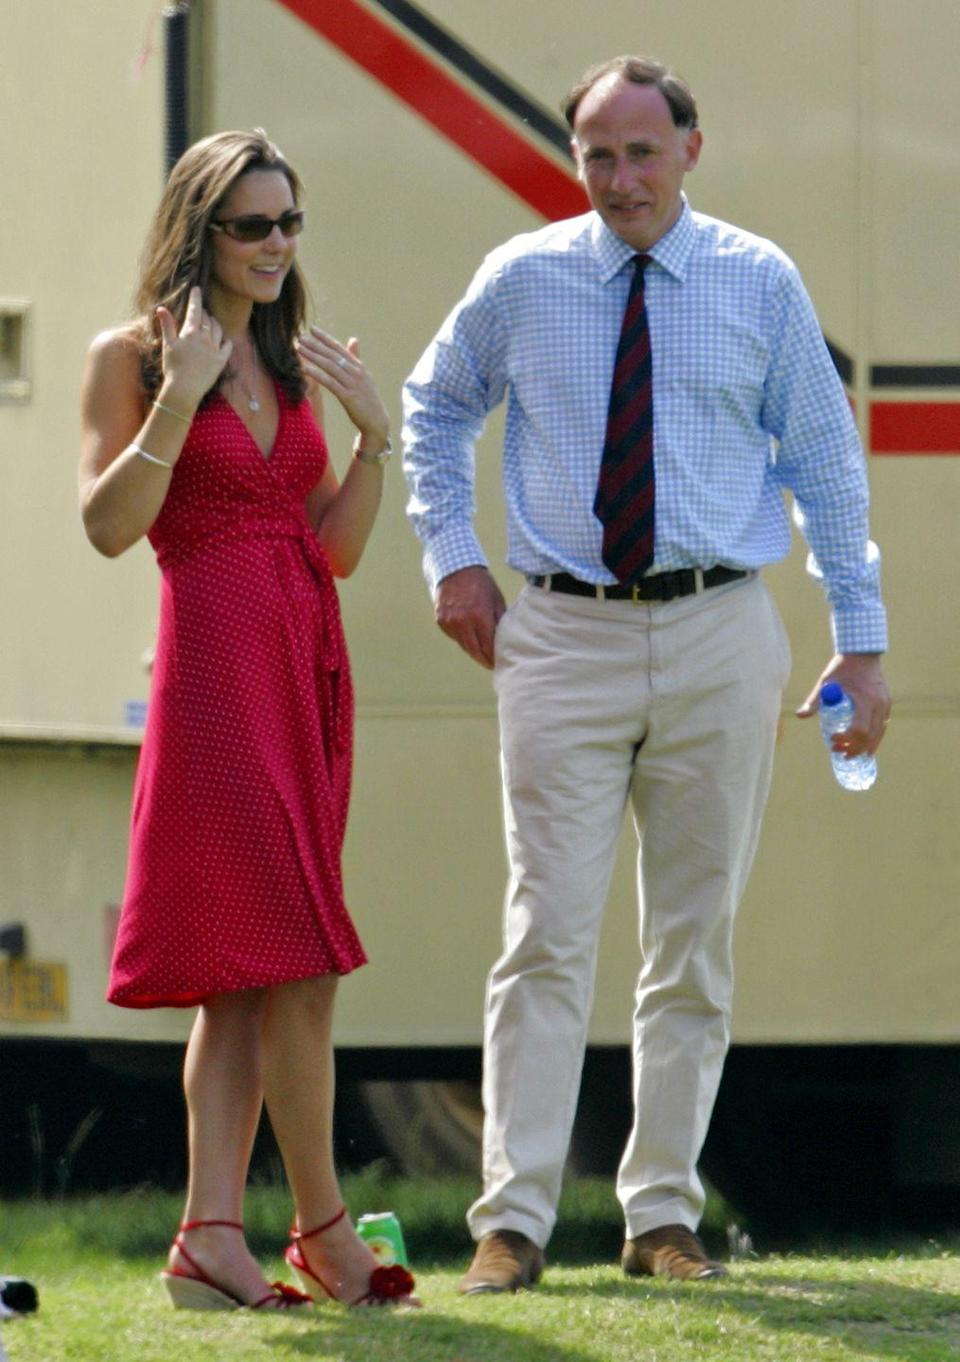 <p>With Prince William's Private Secretary Jamie Lowther-Pinkerton while watching Prince William compete in the Chakravarty Cup charity polo match at Ham Polo Club in Richmond, England.</p>